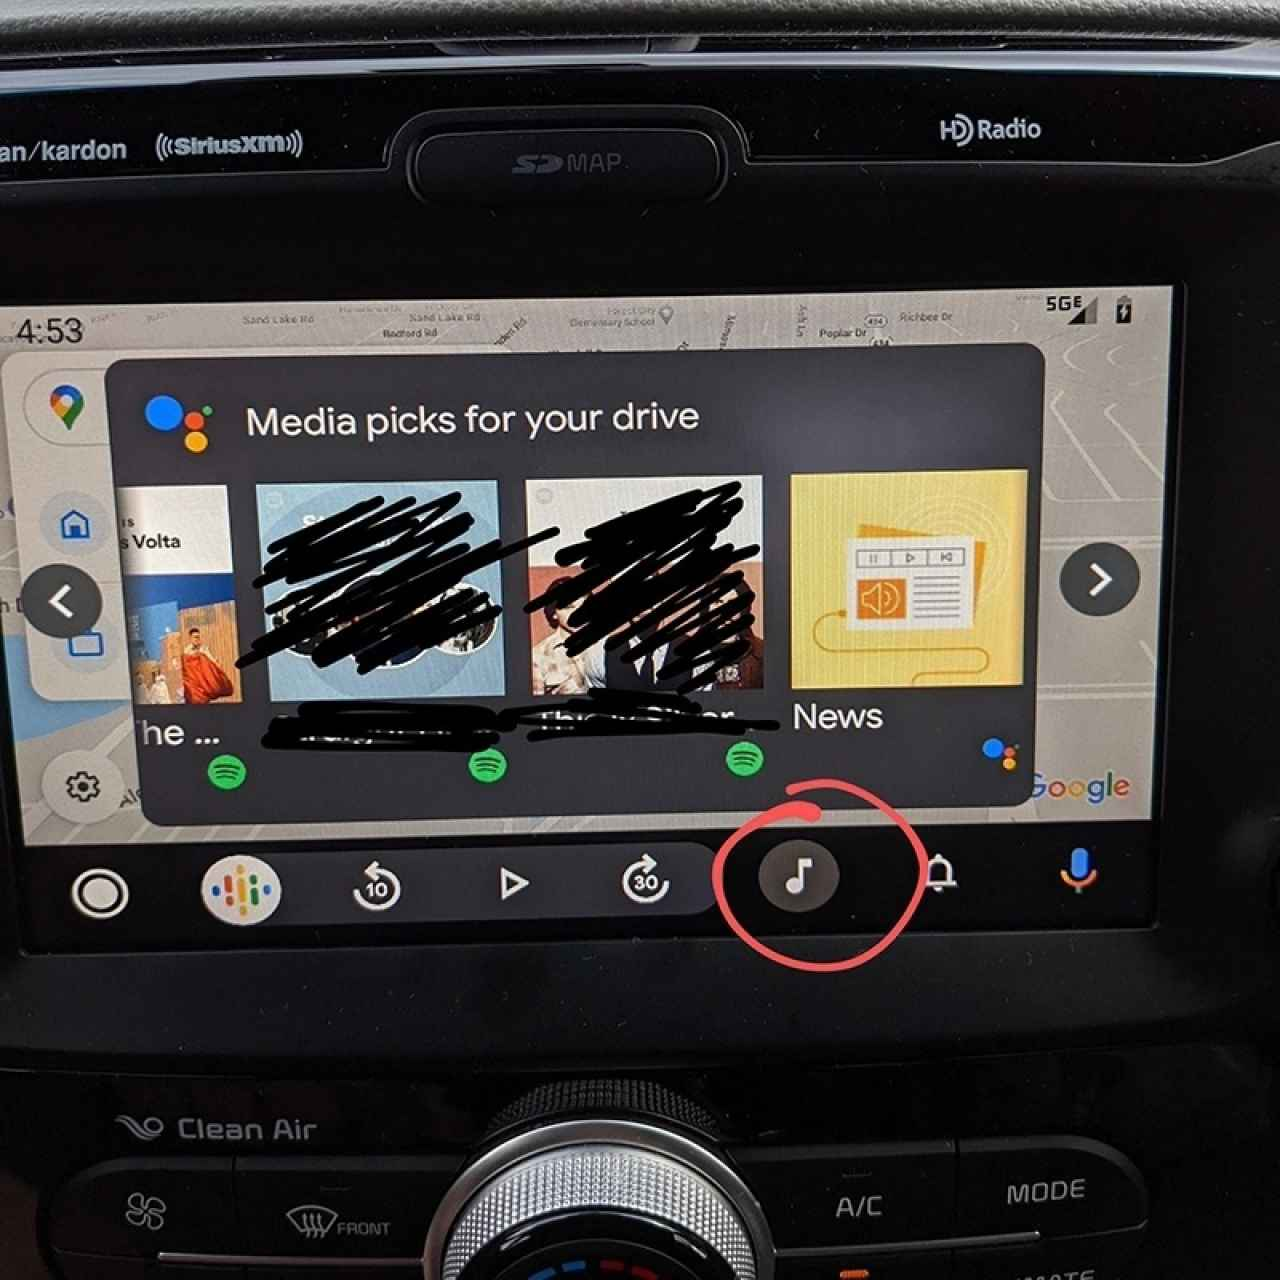 New Android Auto function